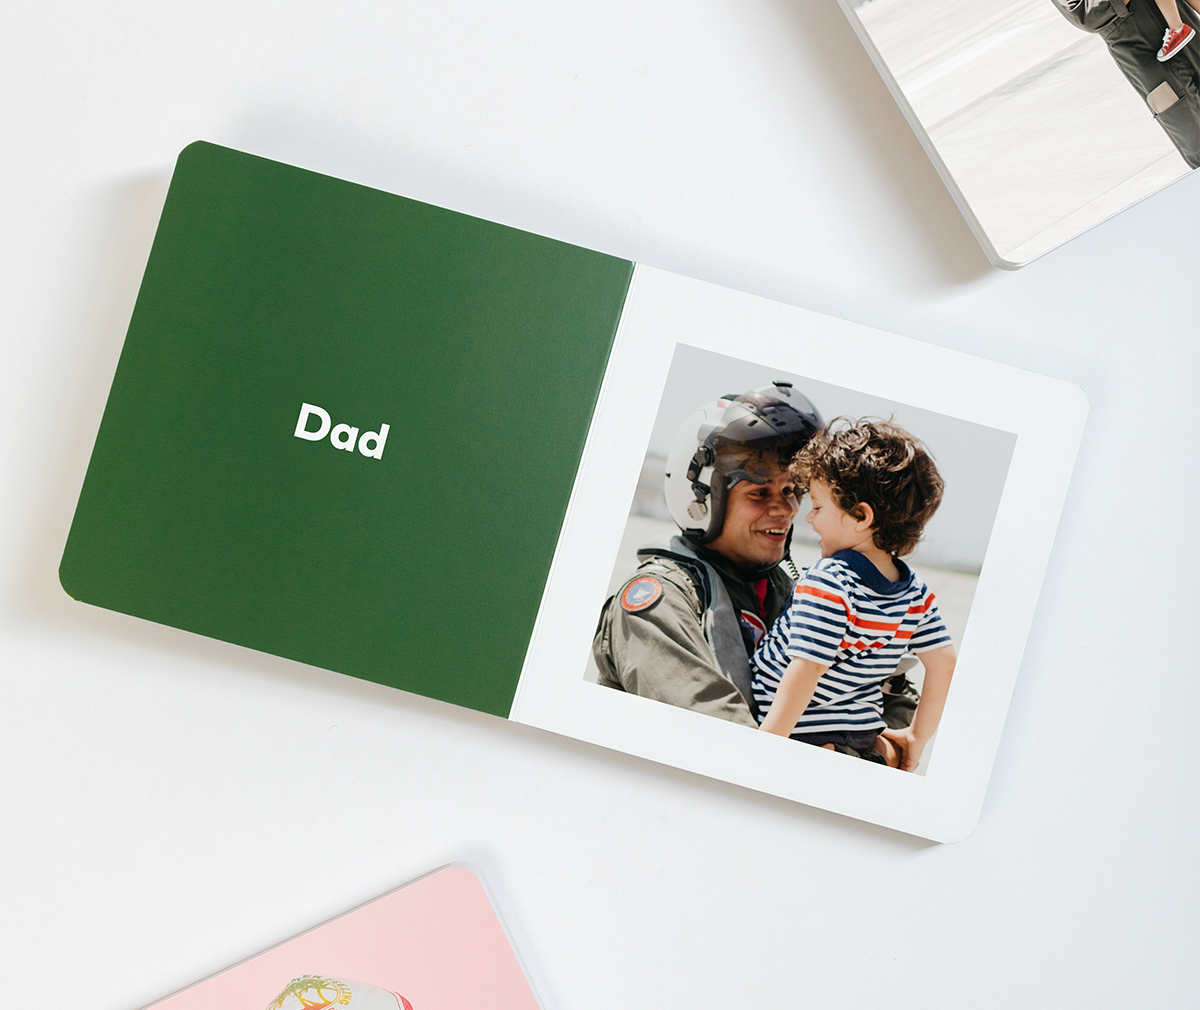 Baby Board Book opened to photo of dad